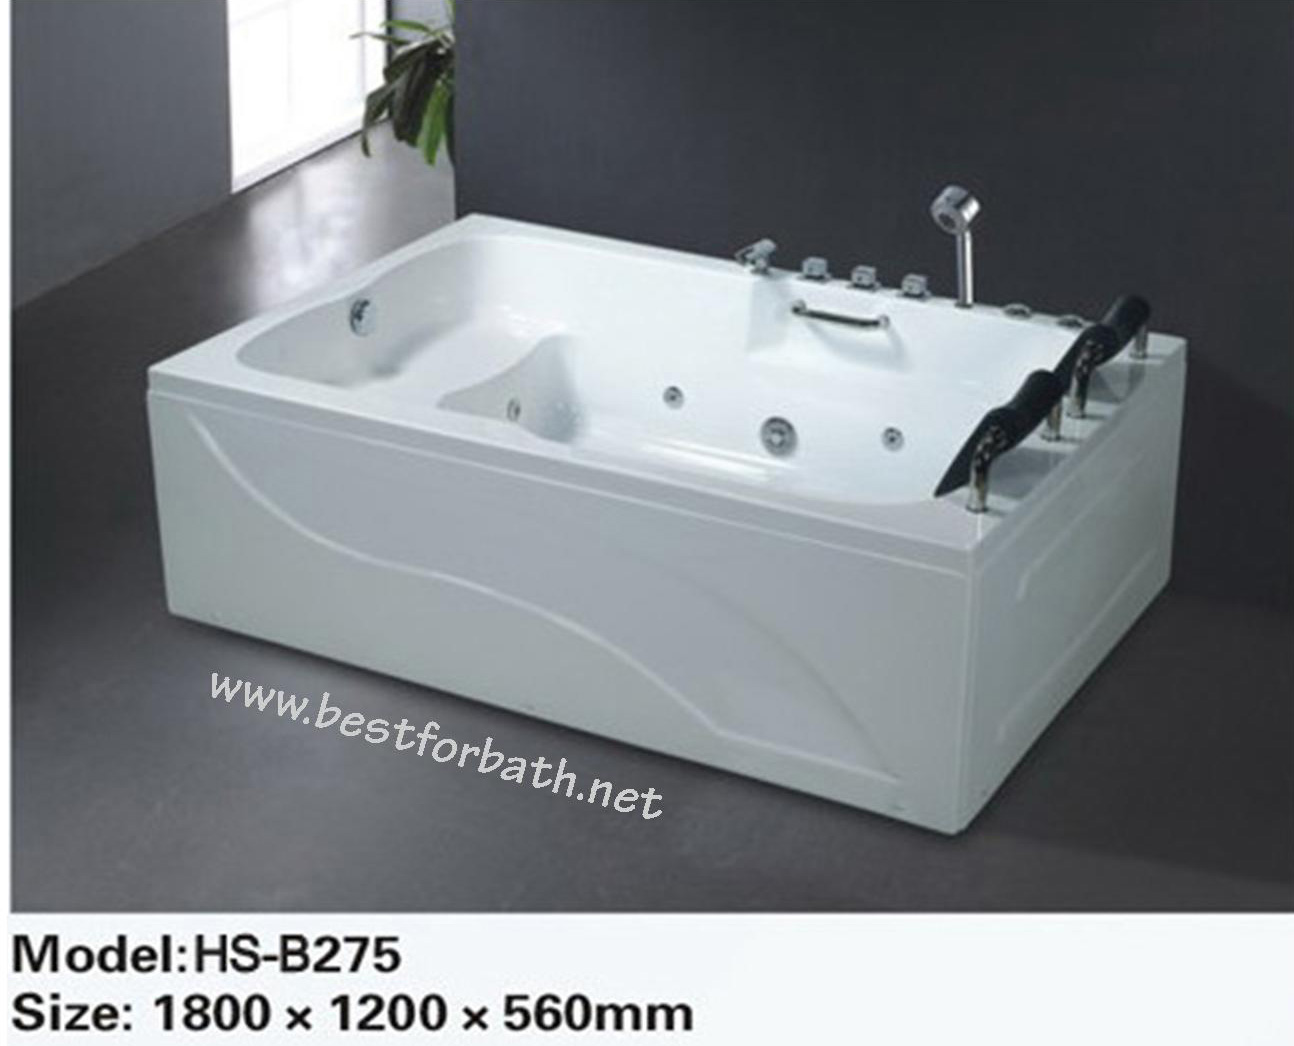 2 person deluxe computerized whirlpool jetted bathtubs for Whirlpool tubs on sale